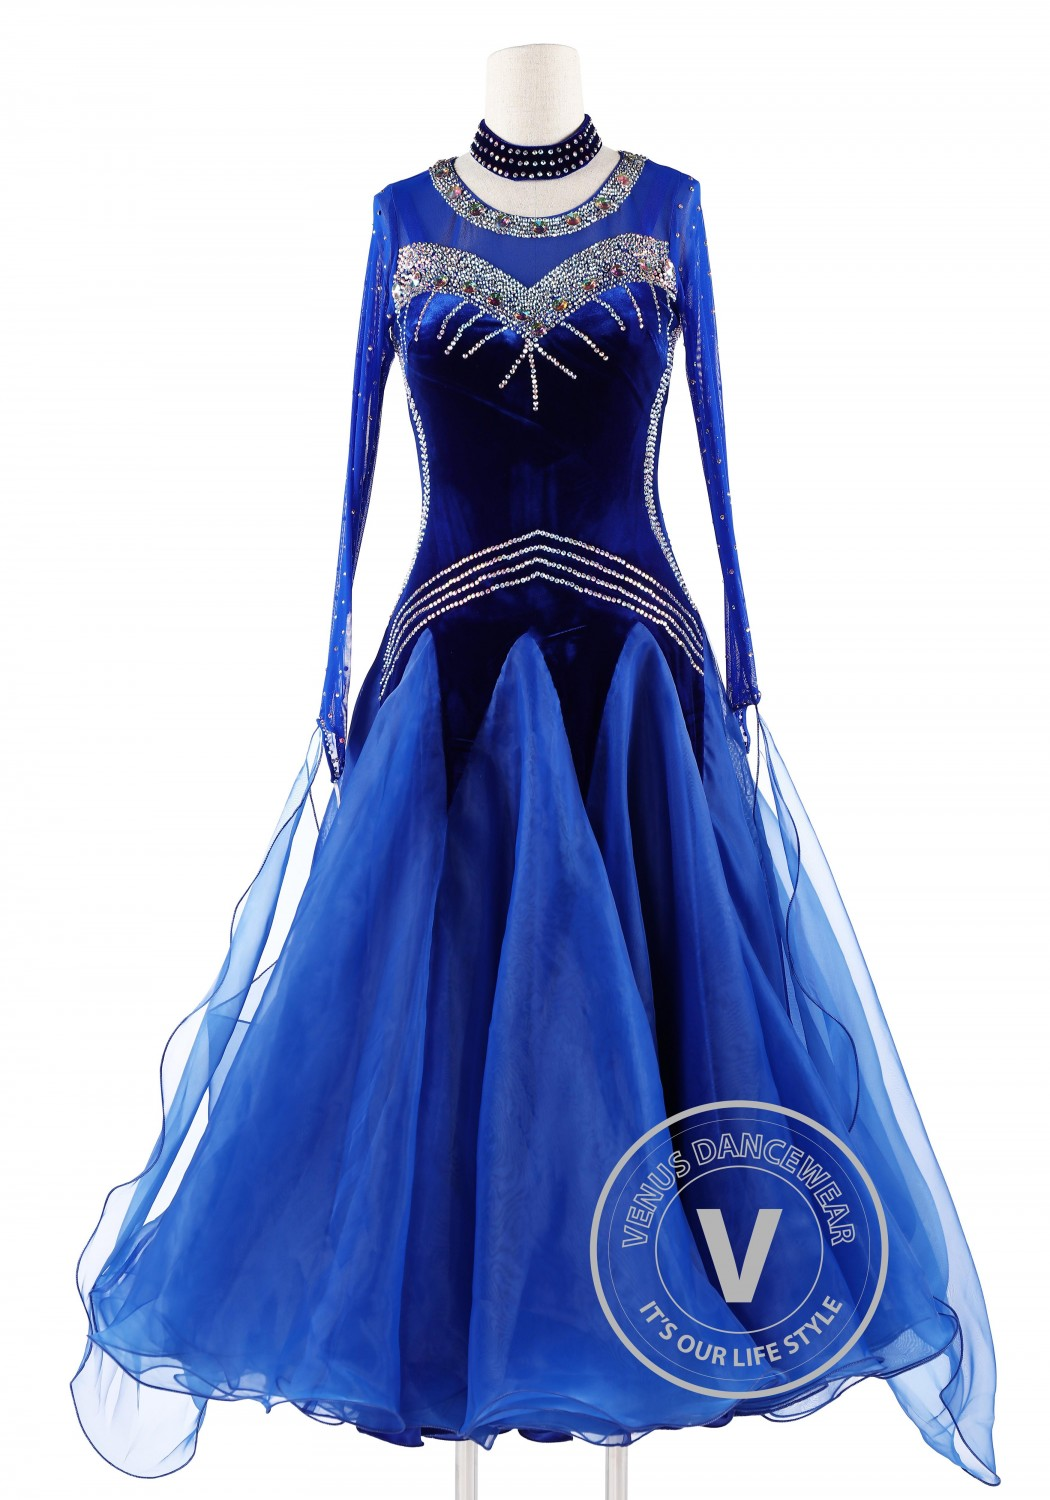 Elegant Dark Blue Velvet Ballroom Competition Dance Dress